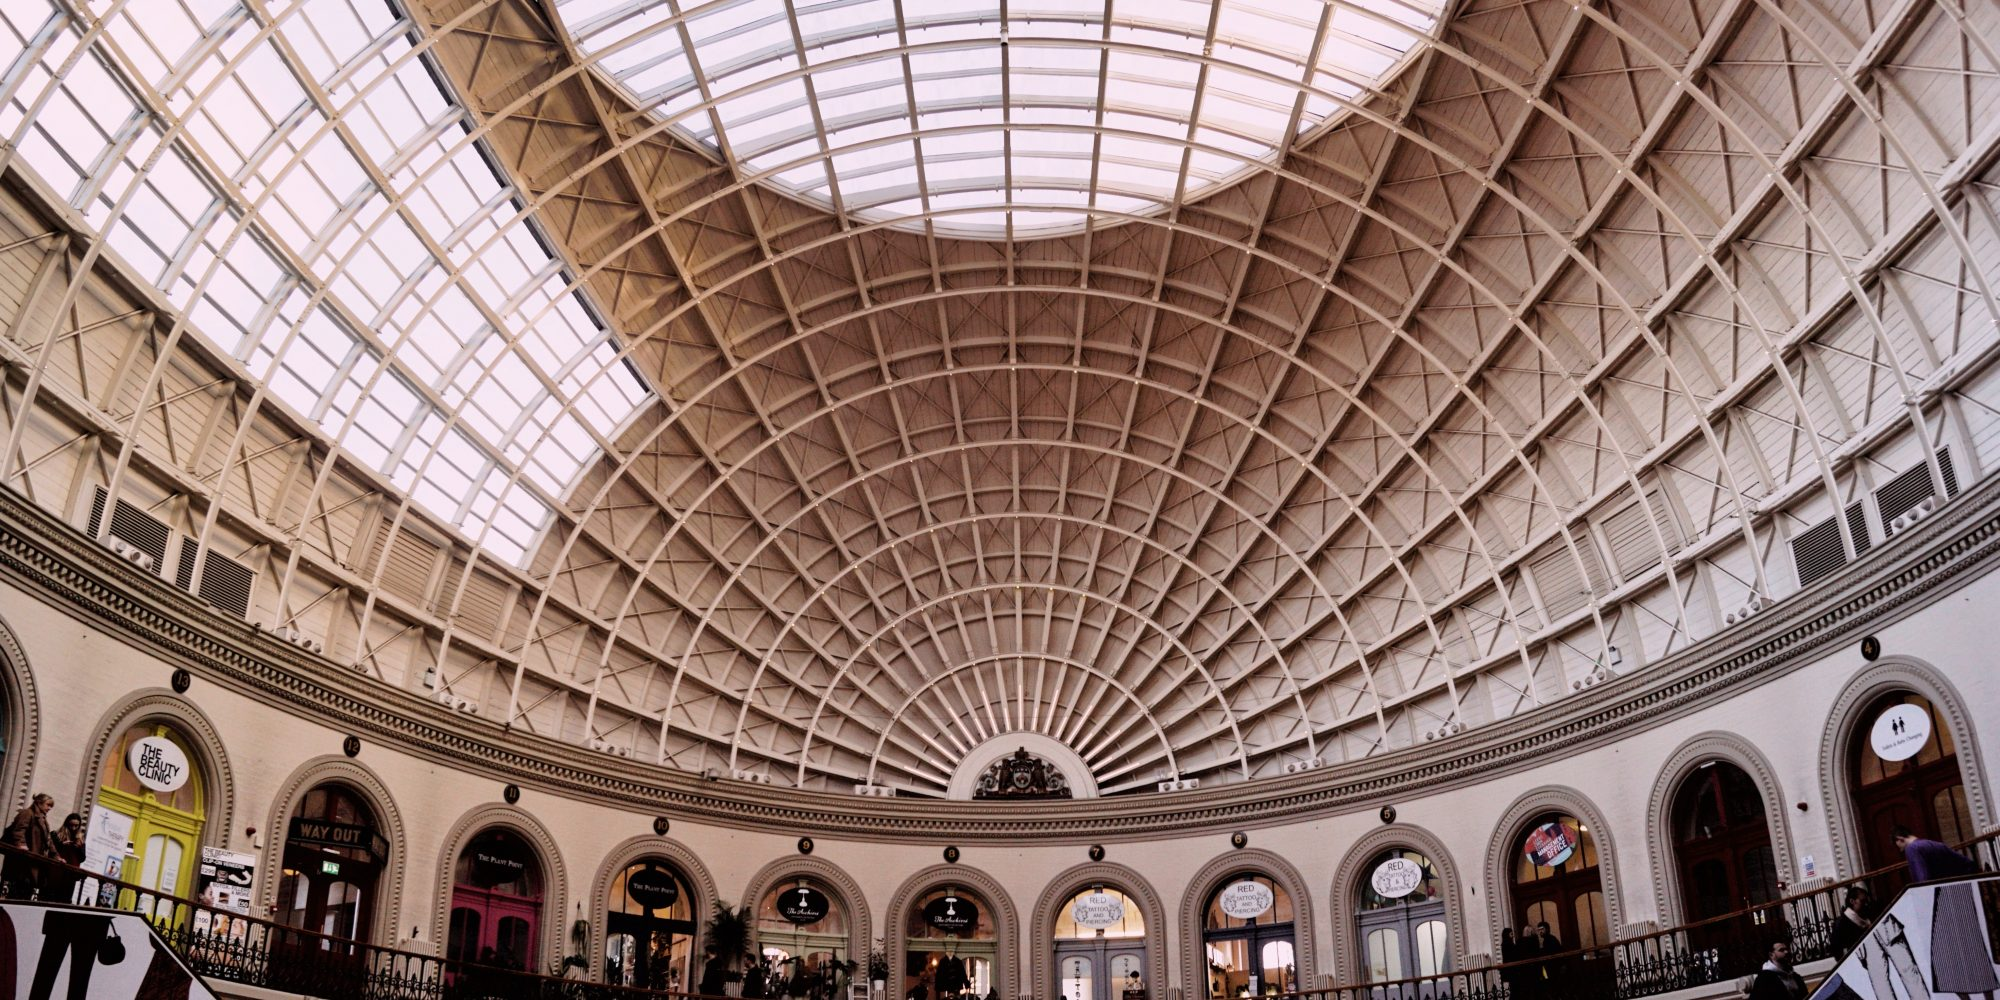 Domed ceiling in a period building with retail